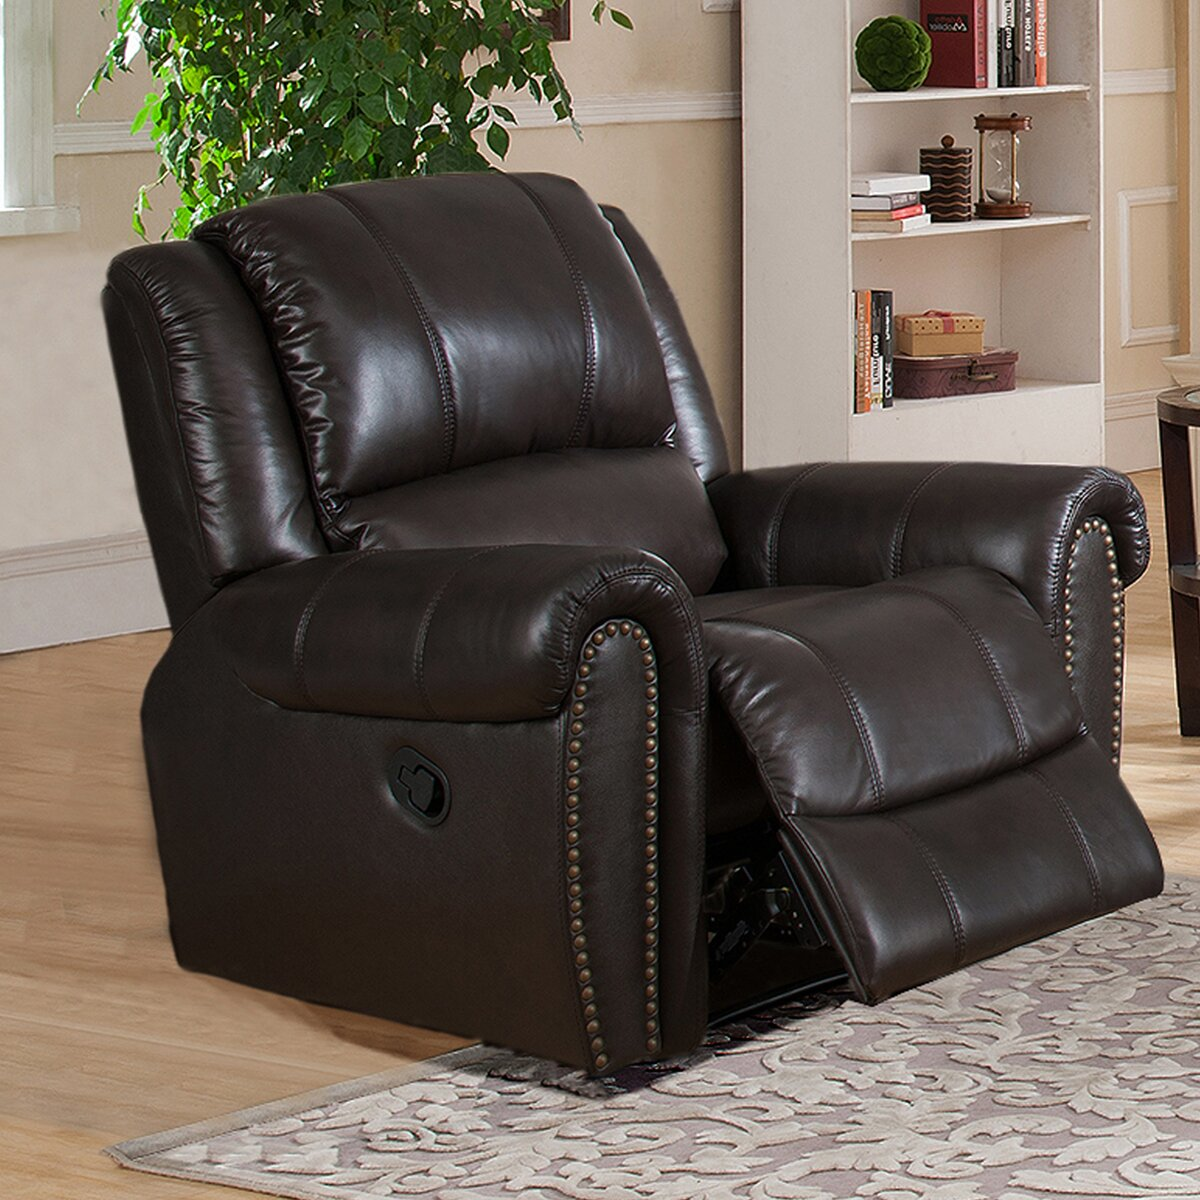 charlotte 3 piece leather recliner living room set wayfair